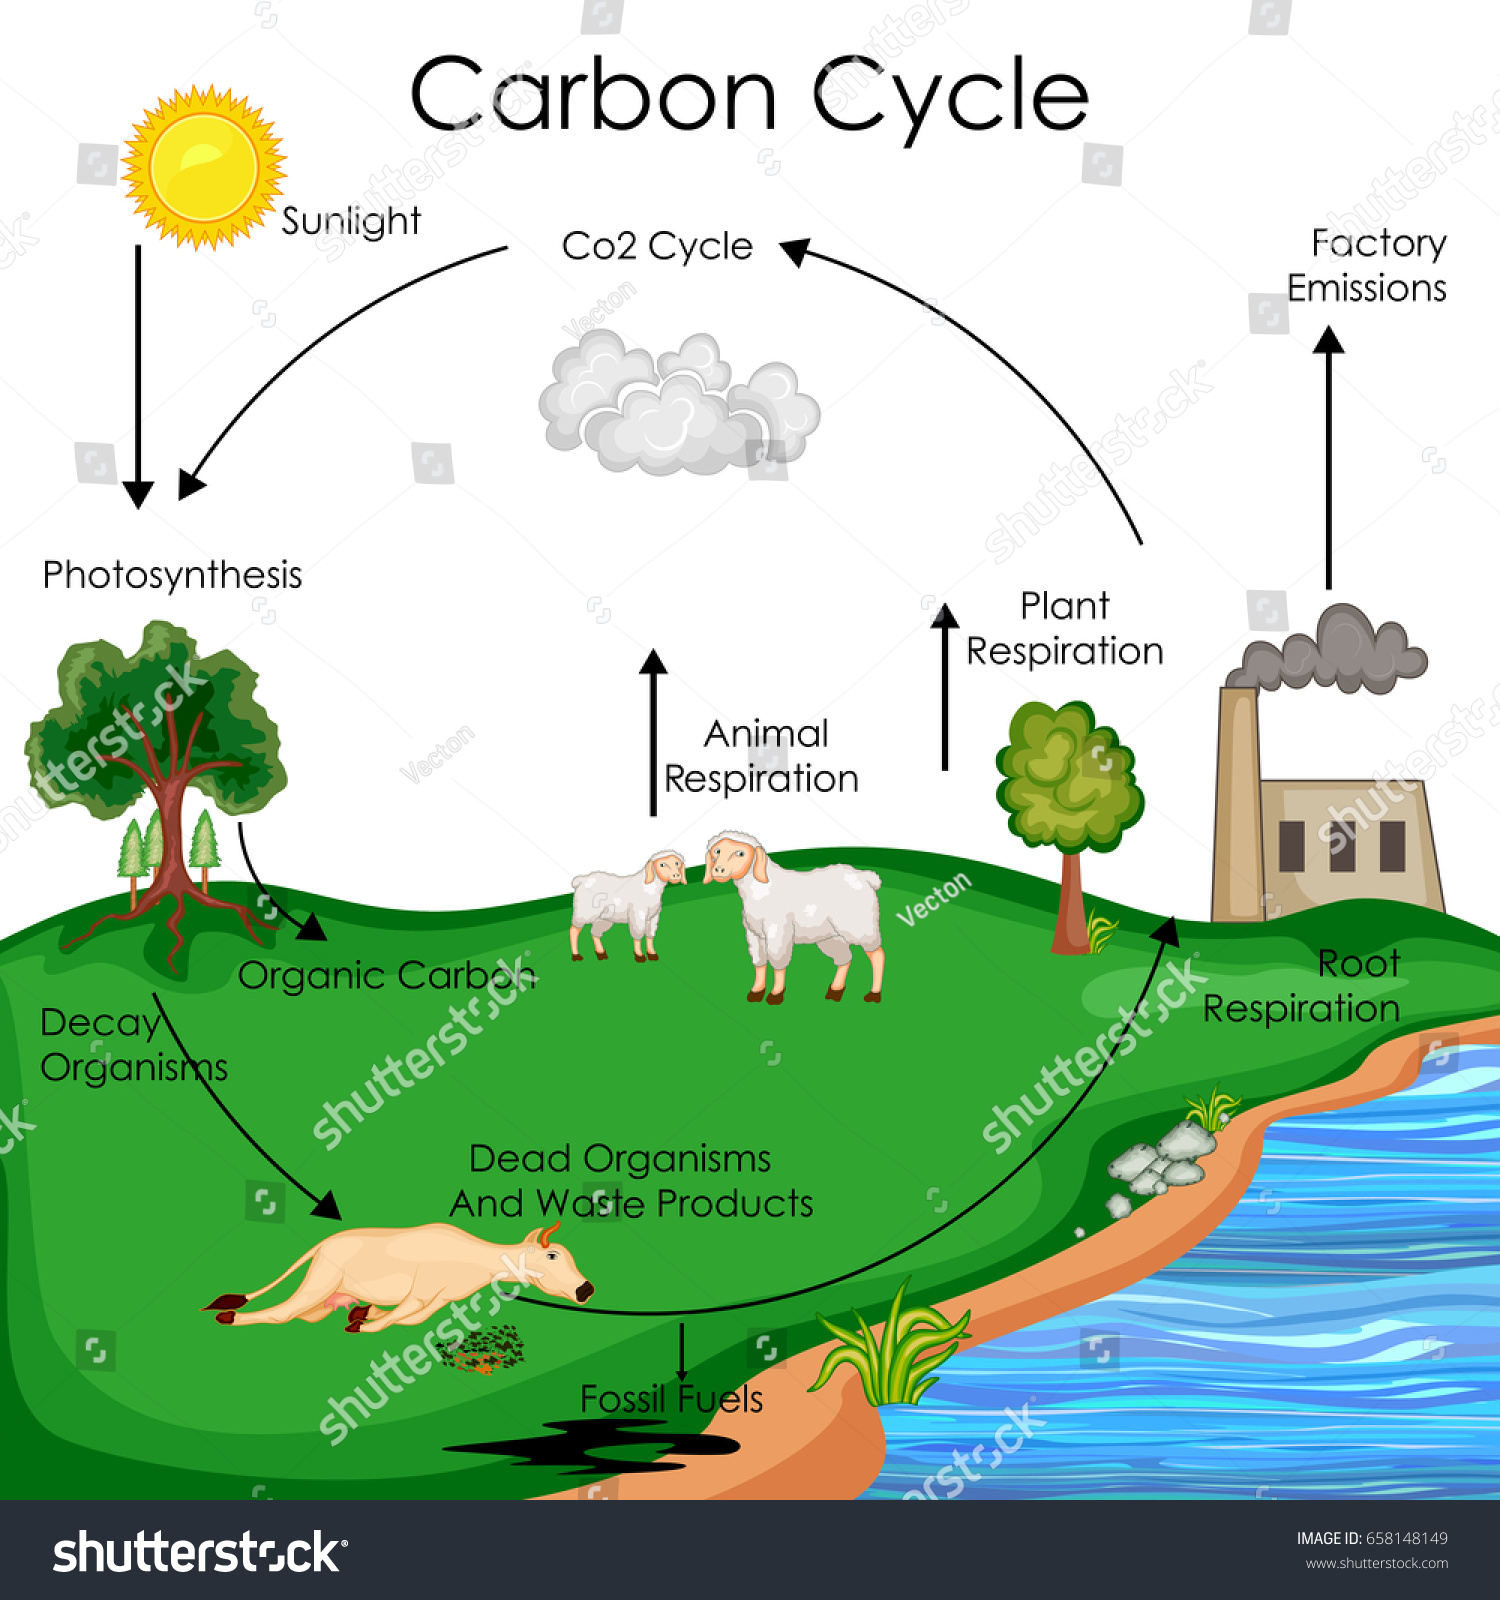 Education chart biology carbon cycle diagram em vetor stock education chart of biology for carbon cycle diagram vector illustration ccuart Gallery